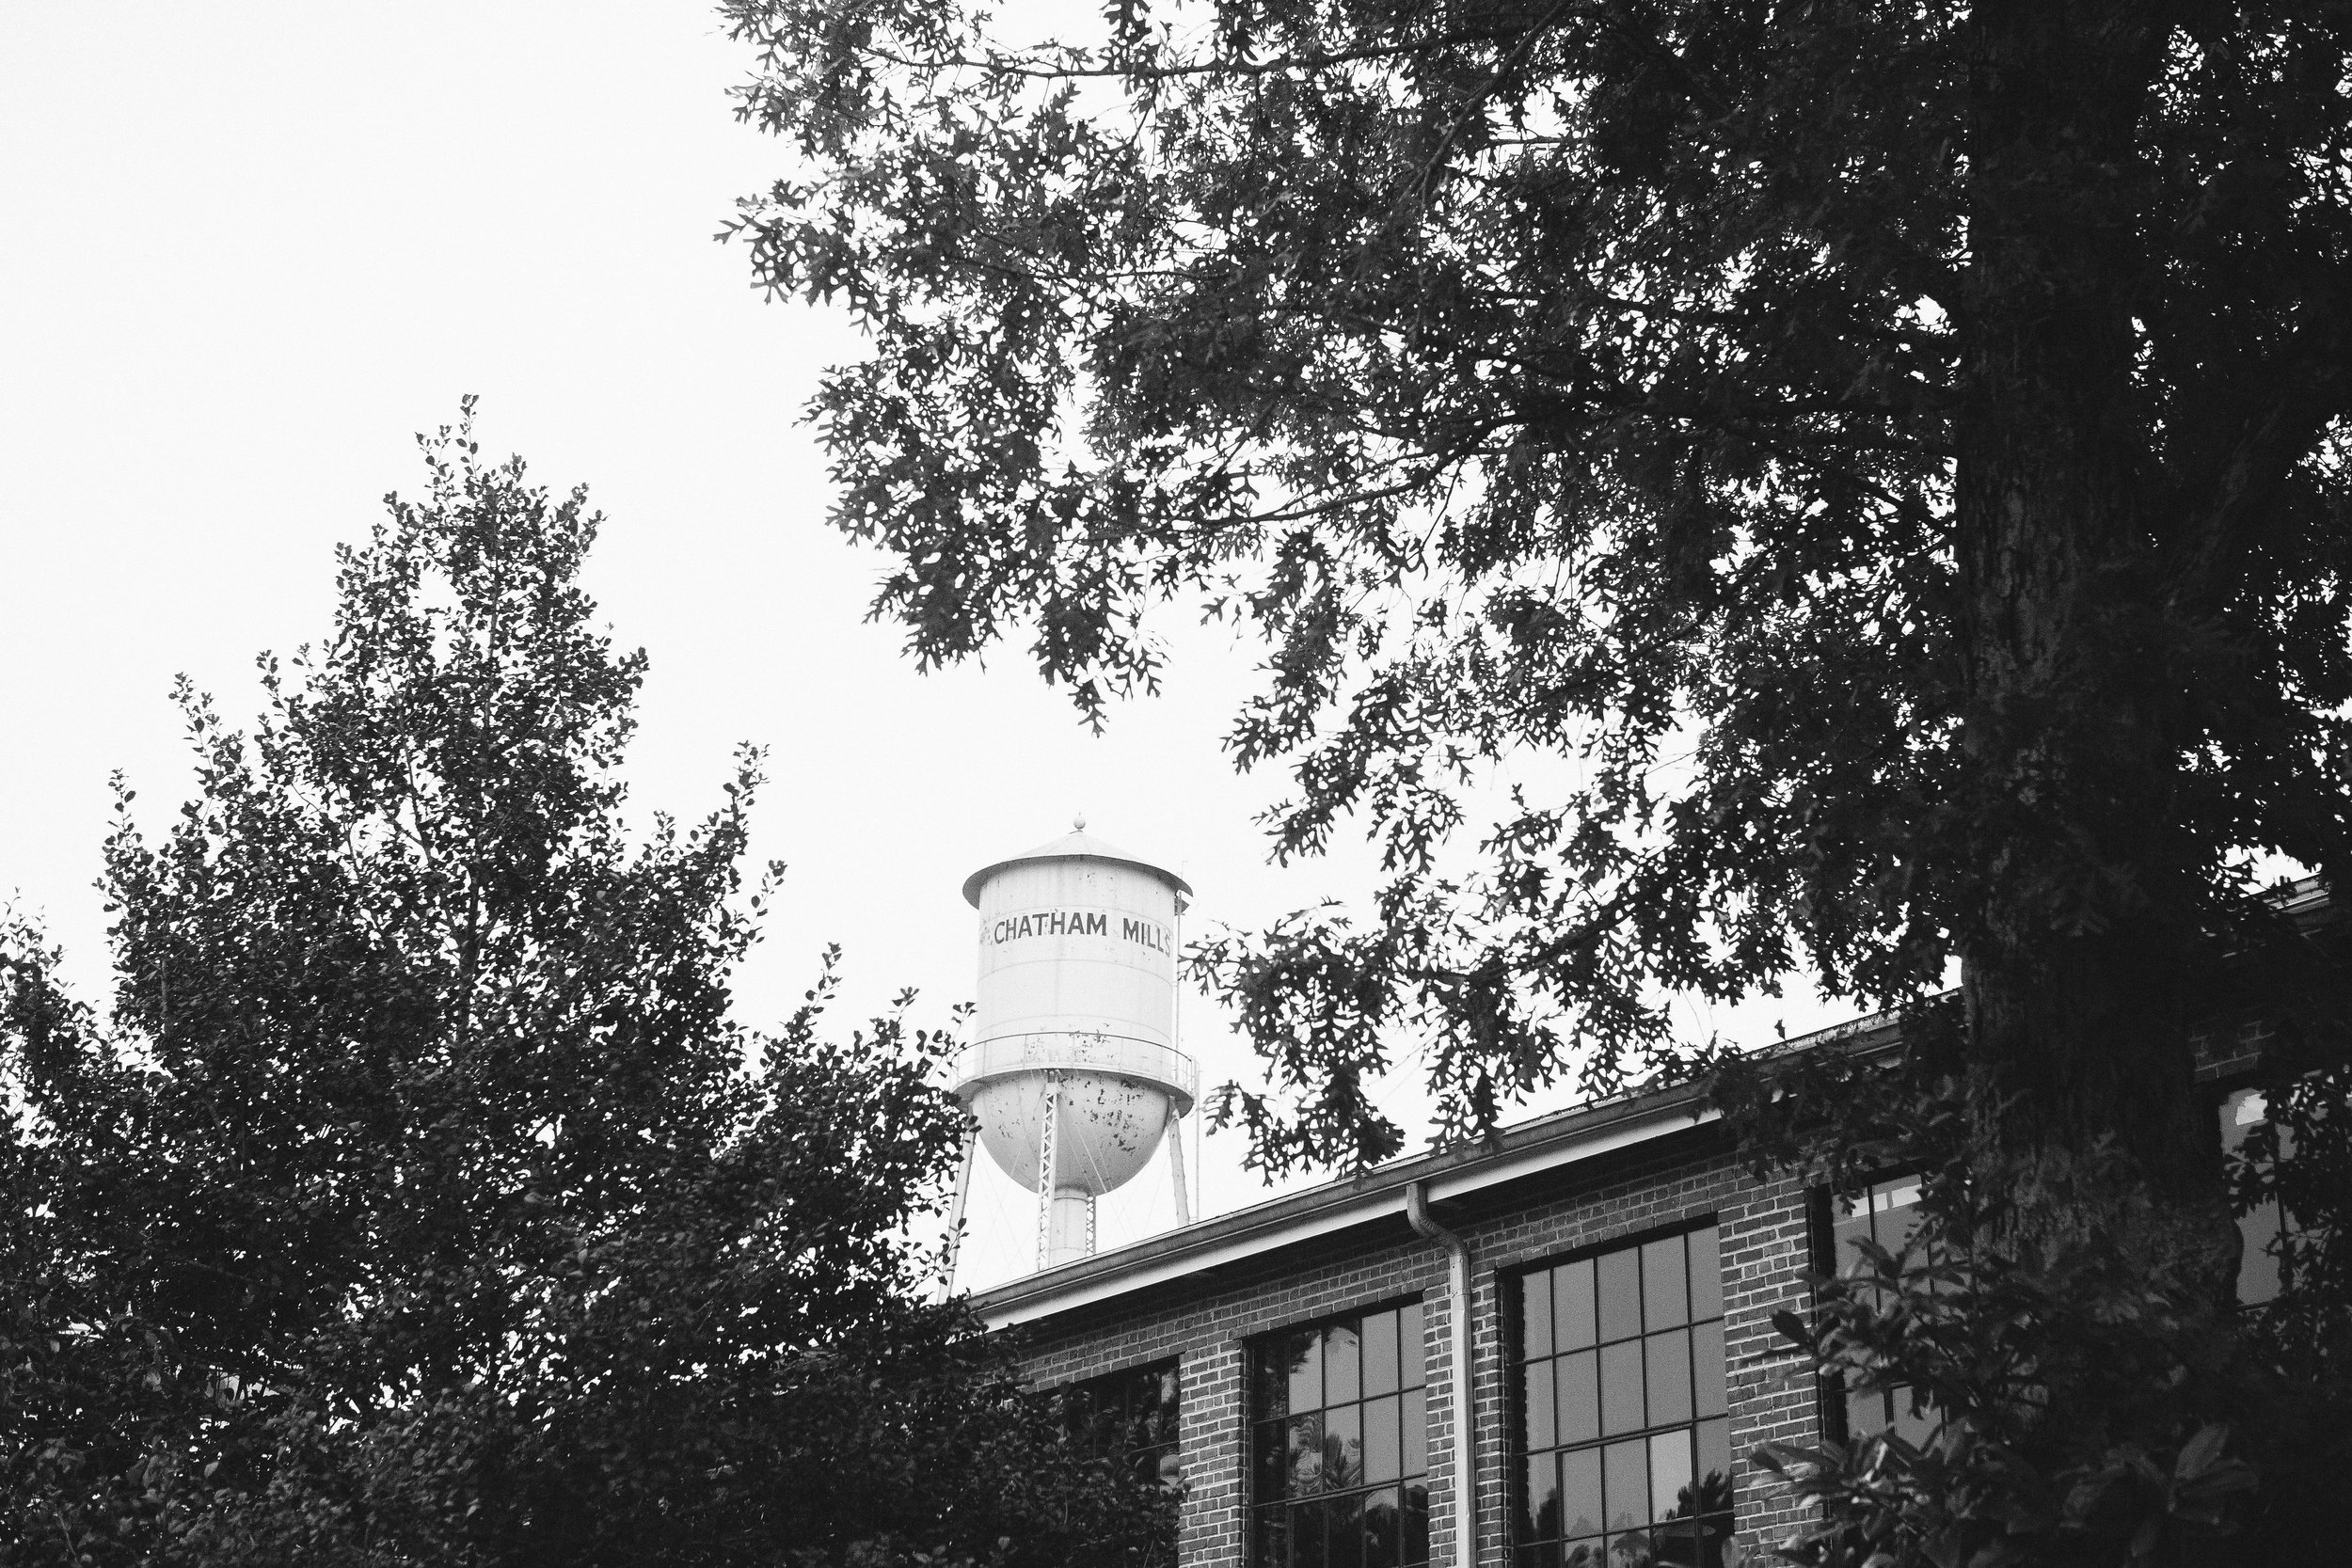 chatham_mills_water_tower